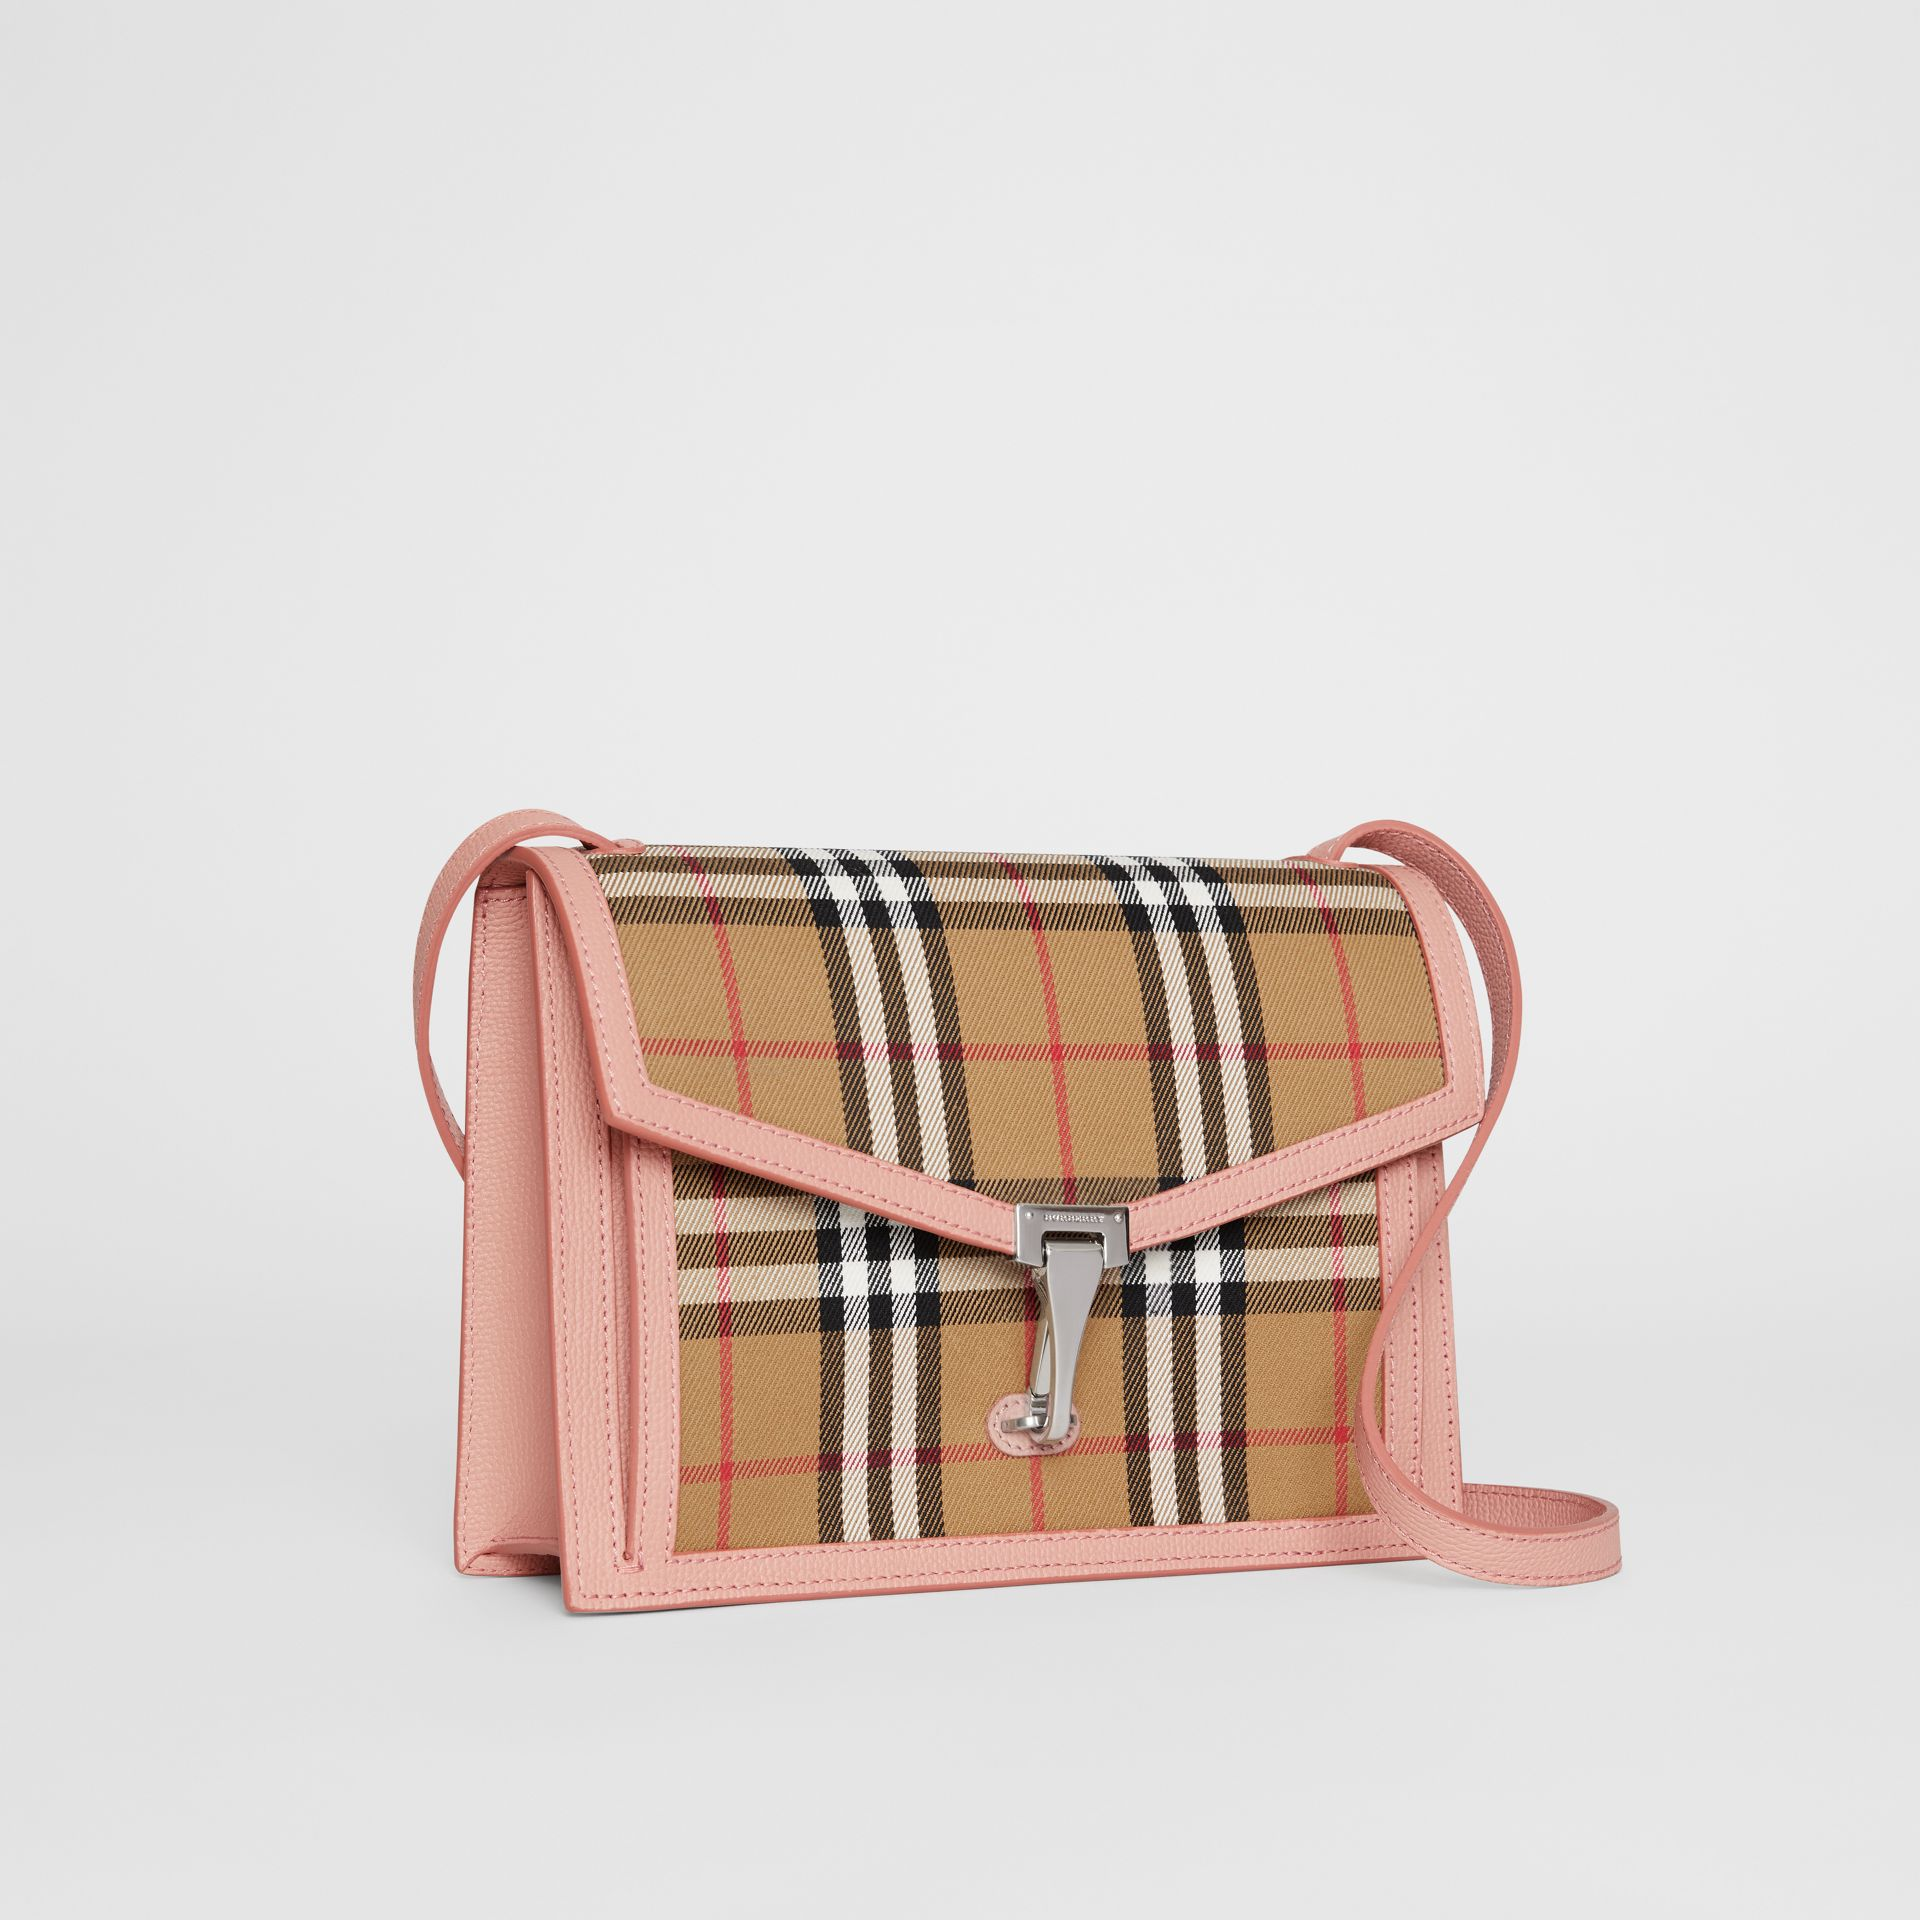 Small Vintage Check and Leather Crossbody Bag in Ash Rose - Women | Burberry United Kingdom - gallery image 6